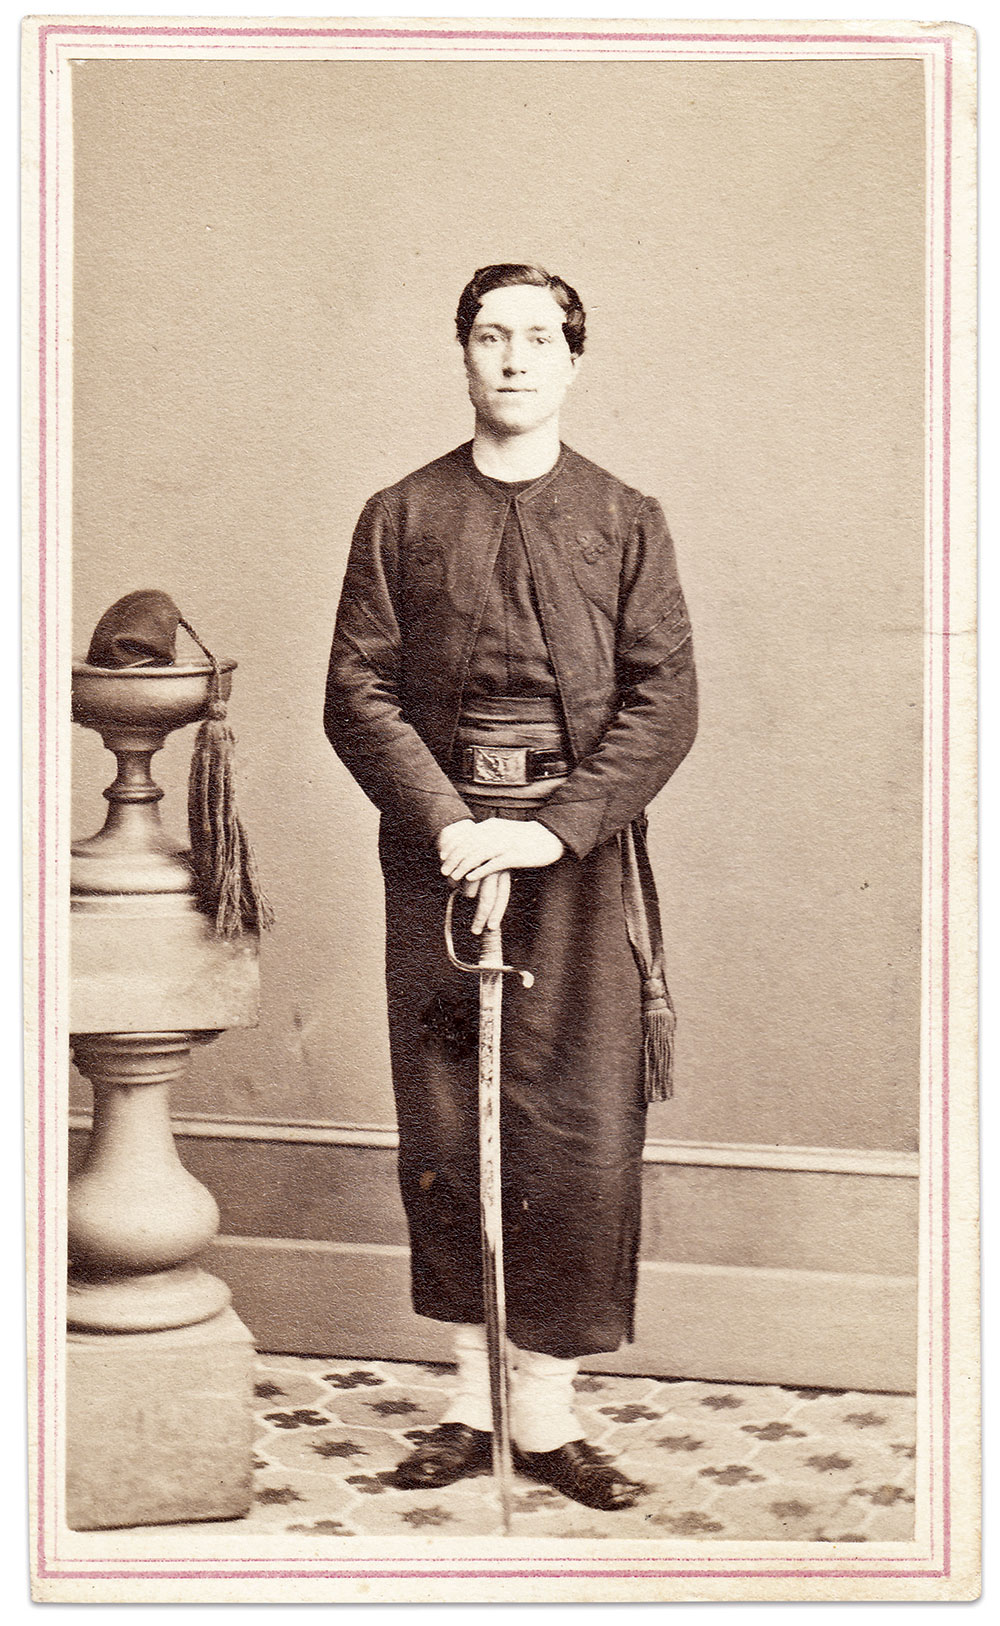 Carte de visite by Richard A. Lewis of New York City. Marty Schoenfeld Collection.